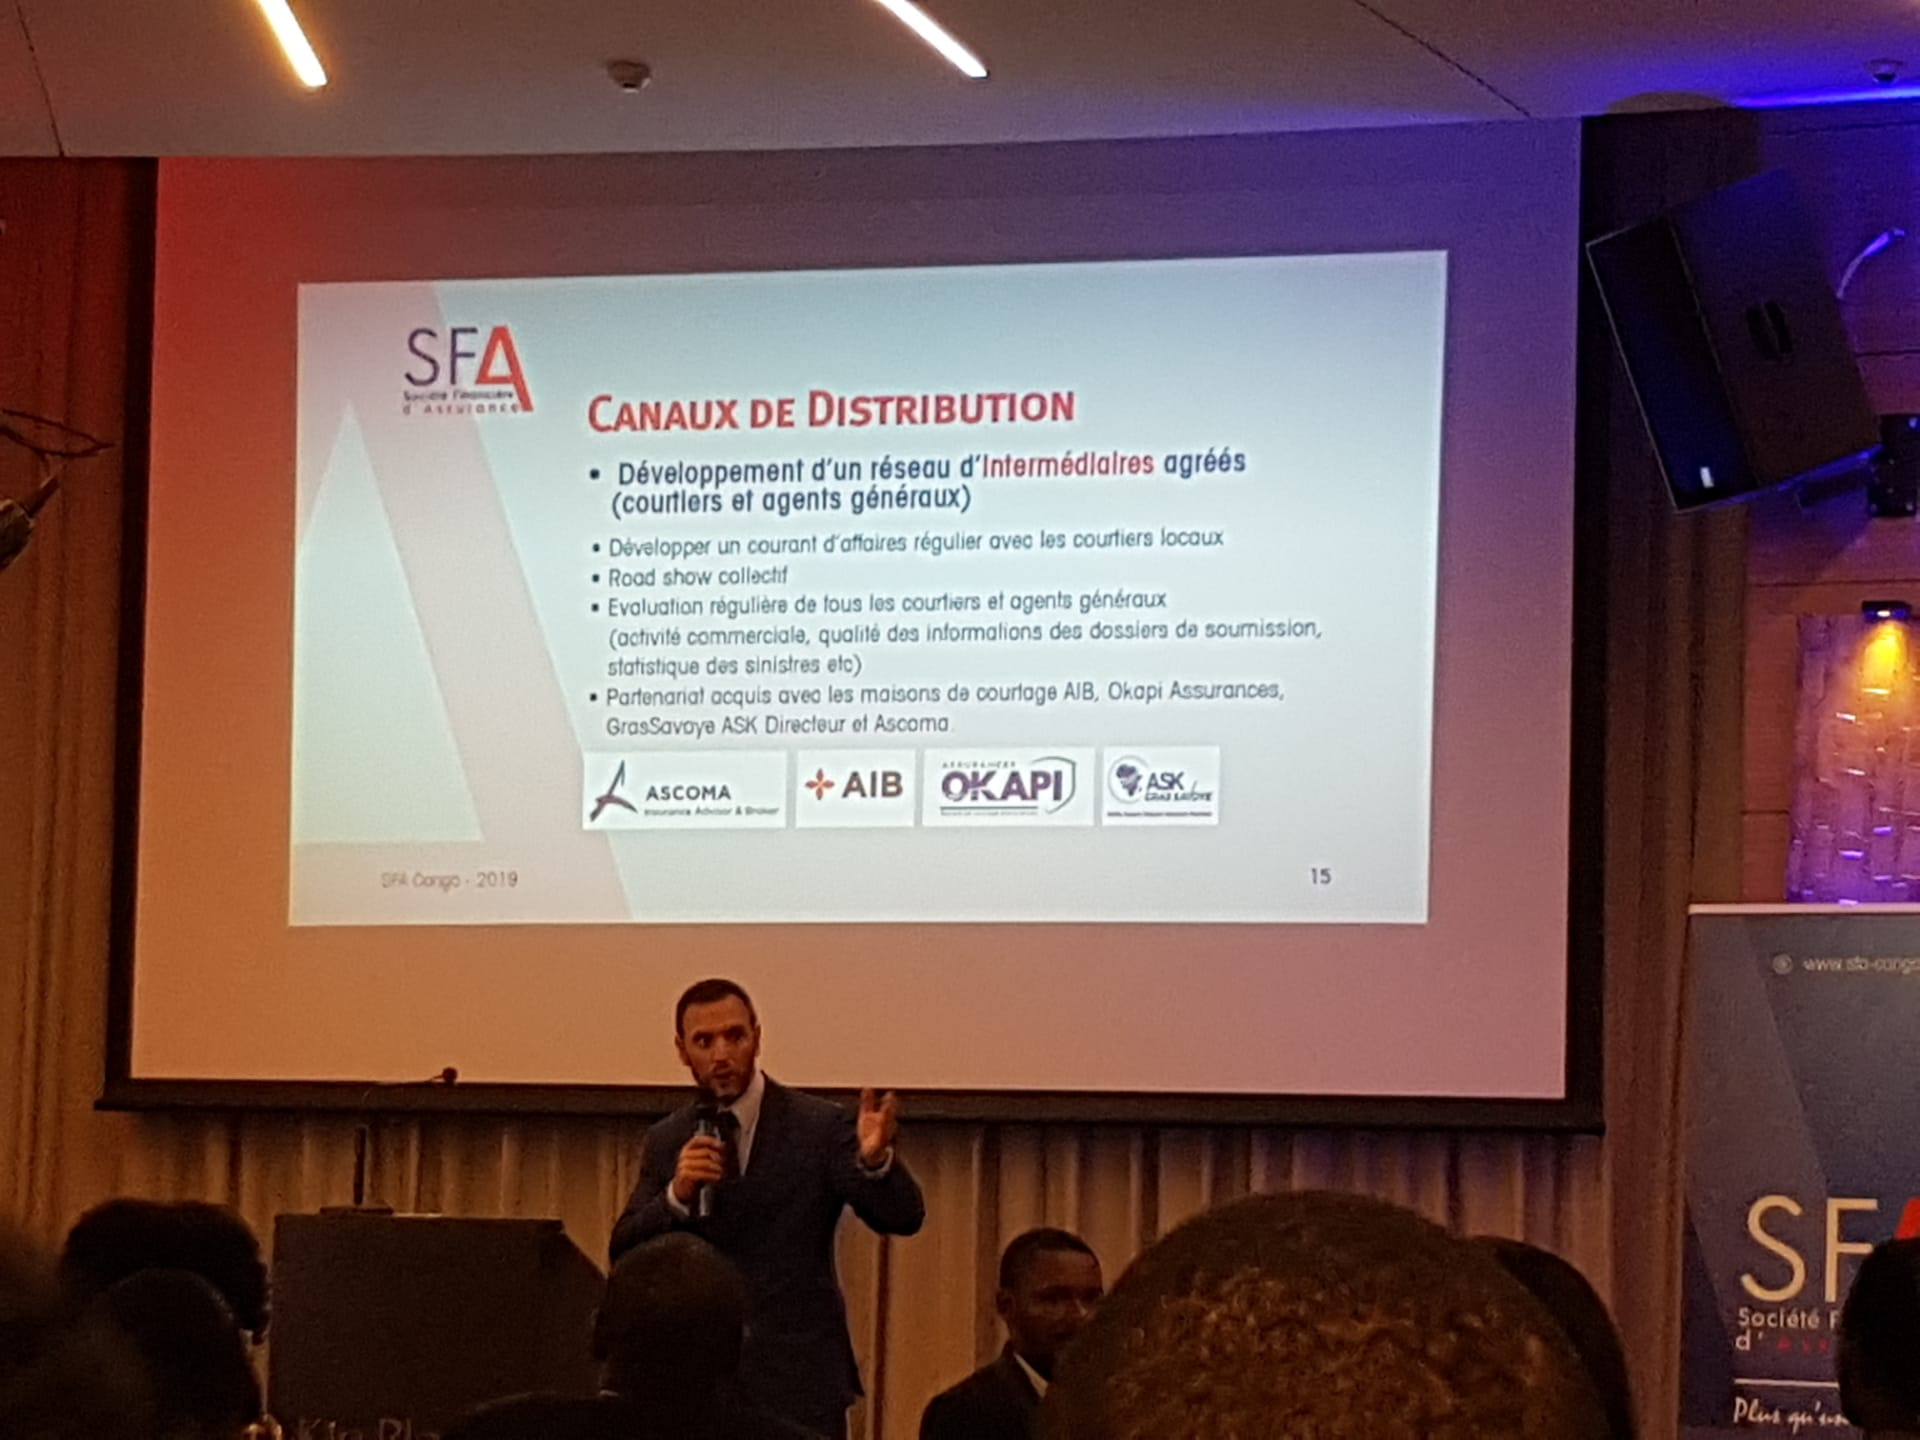 DRC: SFA combines the three qualities of an insurance operator approved by ARCA